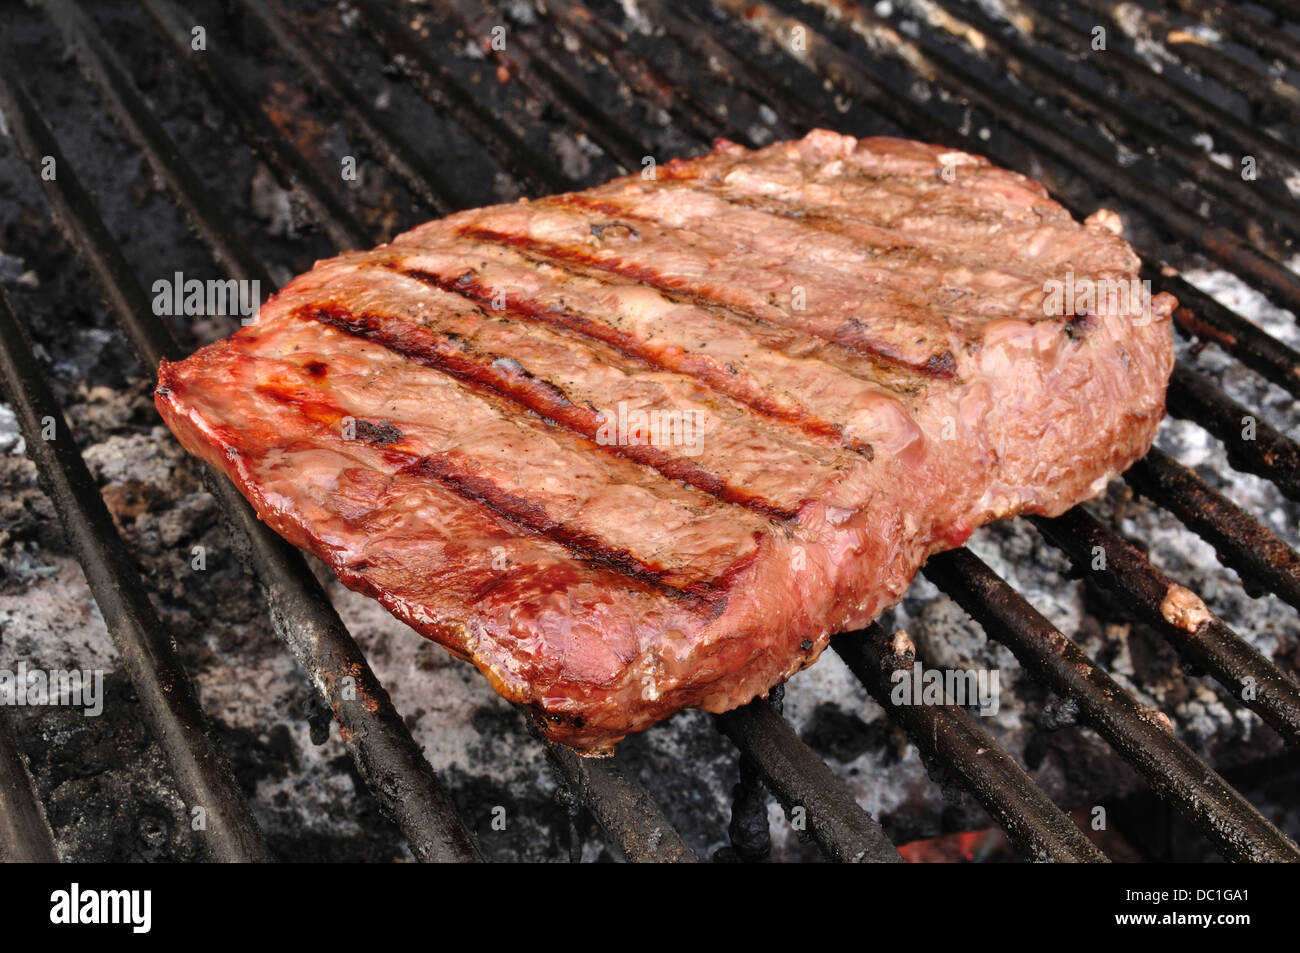 Steak on a BBQ - Stock Image